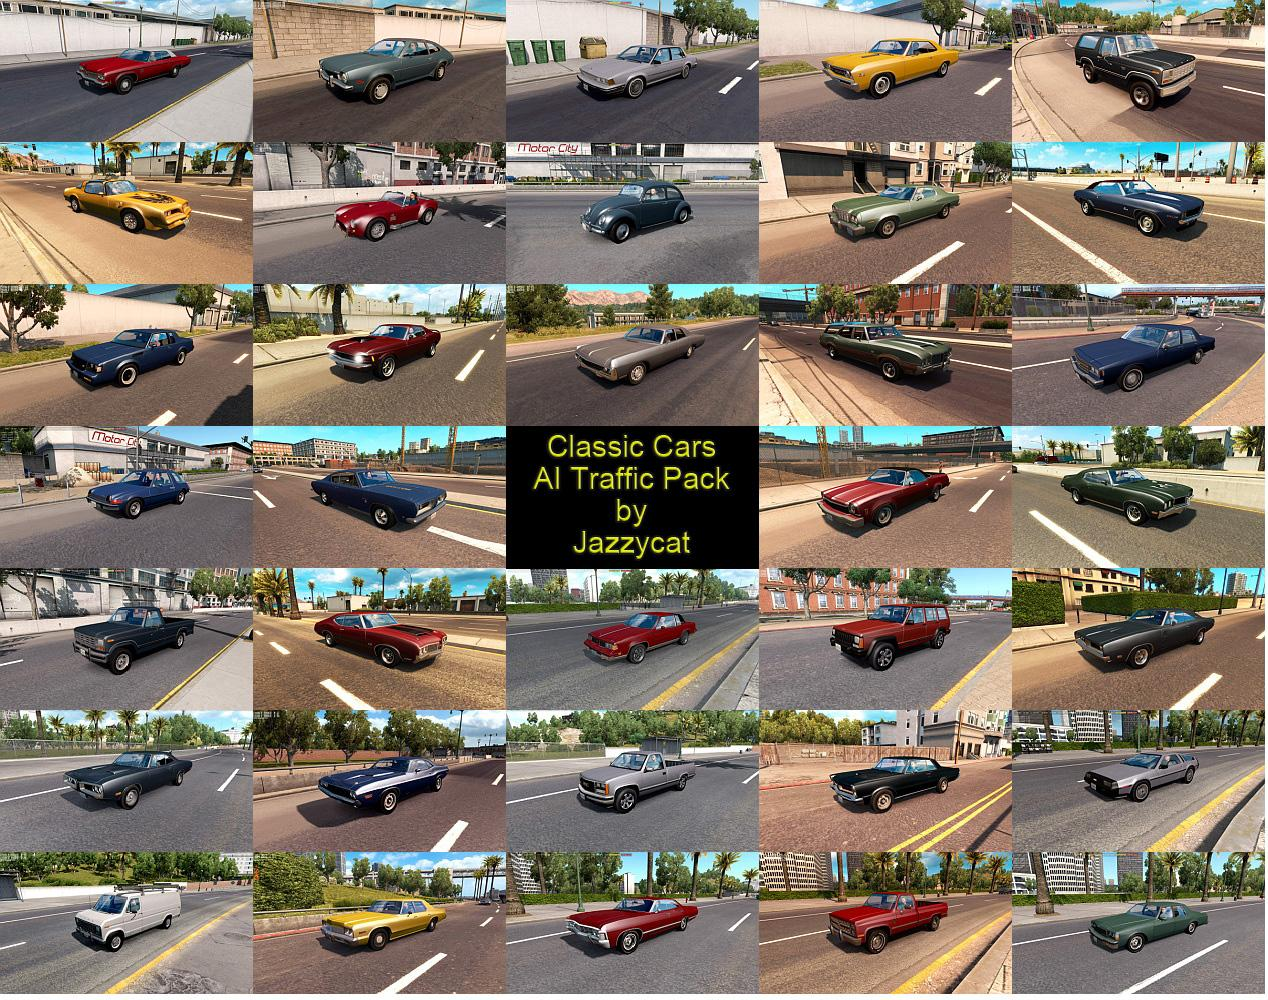 Classic Cars Ai Traffic Pack By Jazzycat V2 3 Ats Mod Euro Truck Simulator 2 Mods